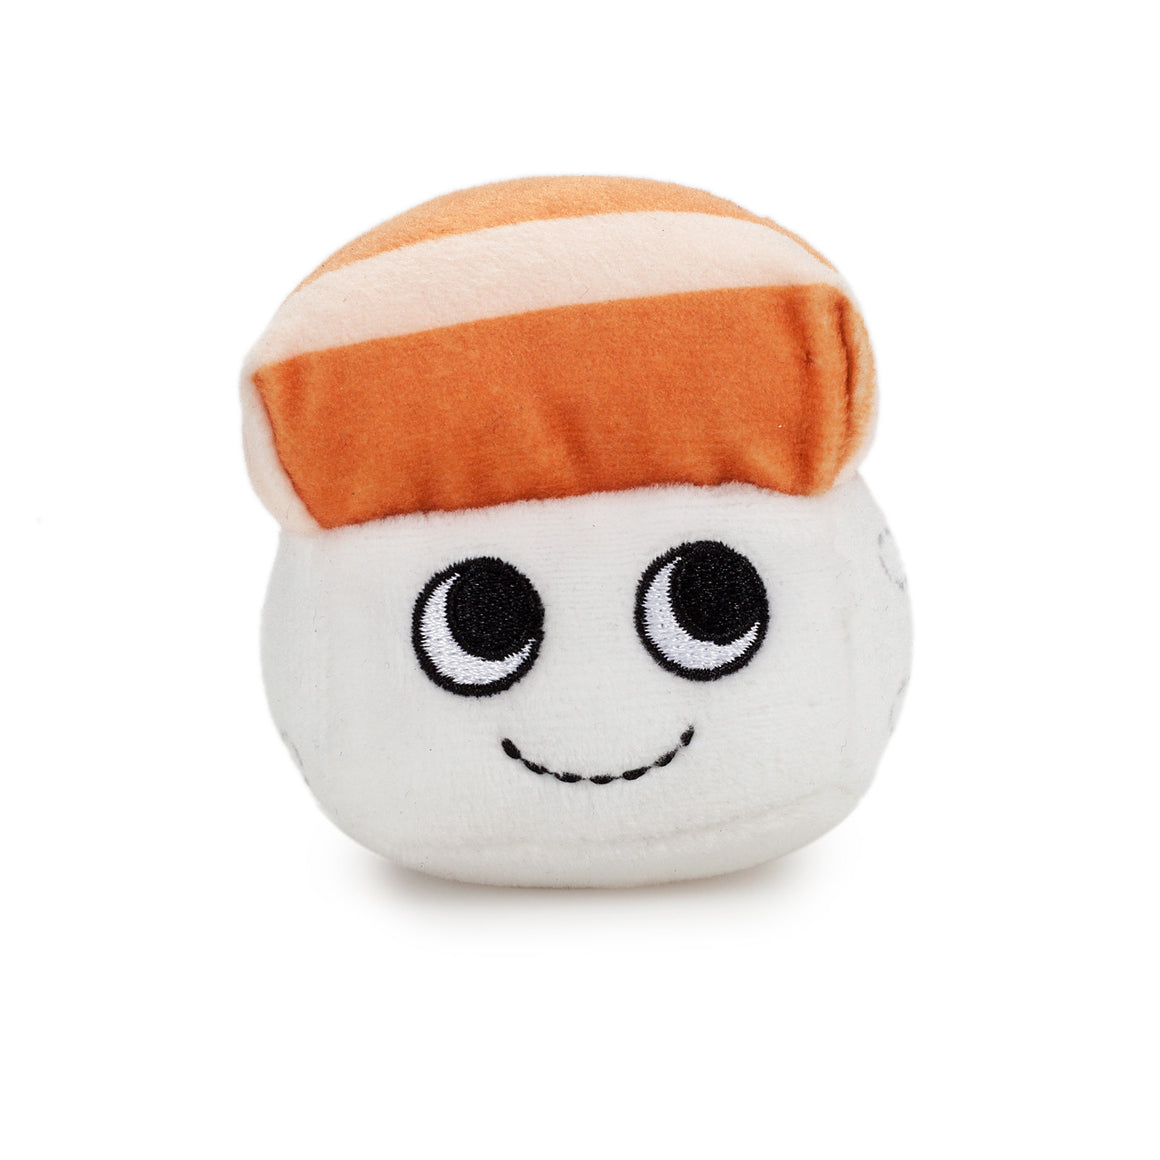 "Eri Eby Yummy World 4"" Plush by Heidi Kenny x Kidrobot - Mindzai  - 1"